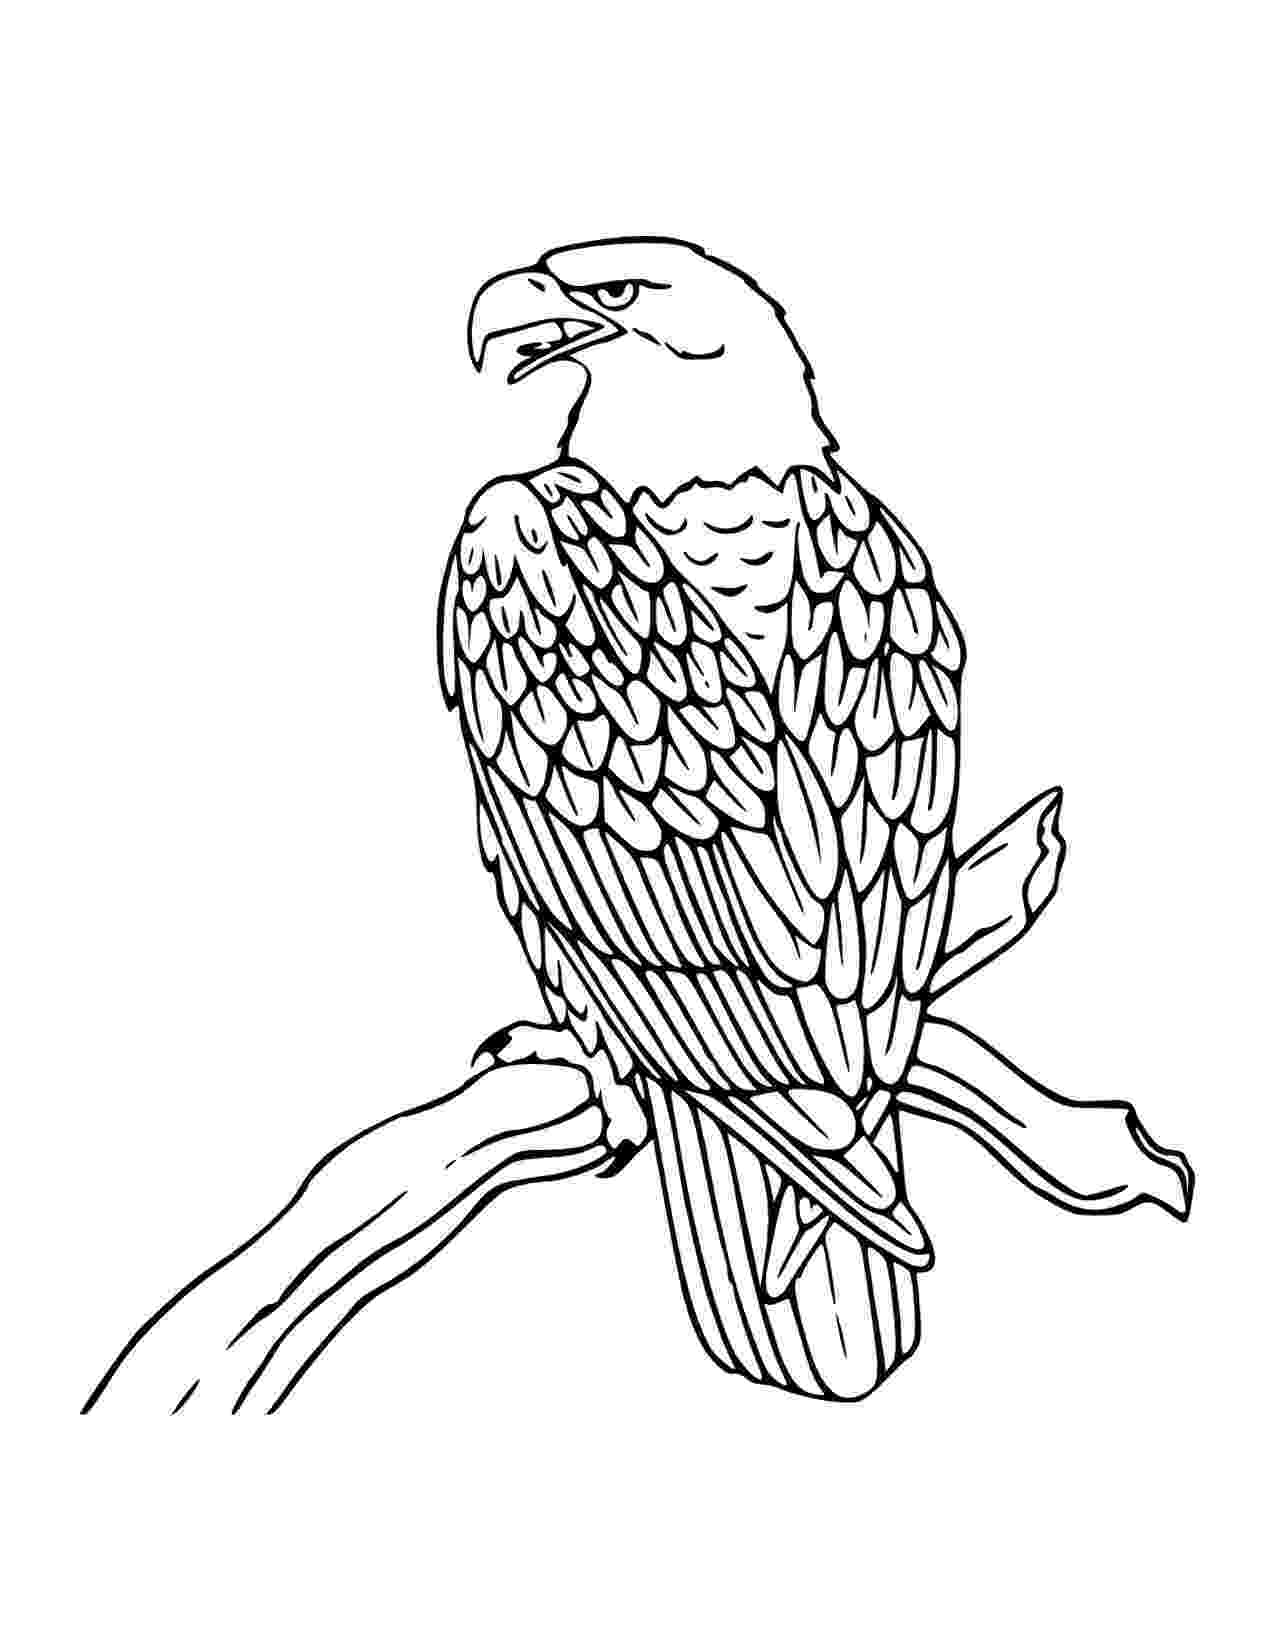 eagle colouring pictures printable eagle coloring pages for kids cool2bkids colouring eagle pictures